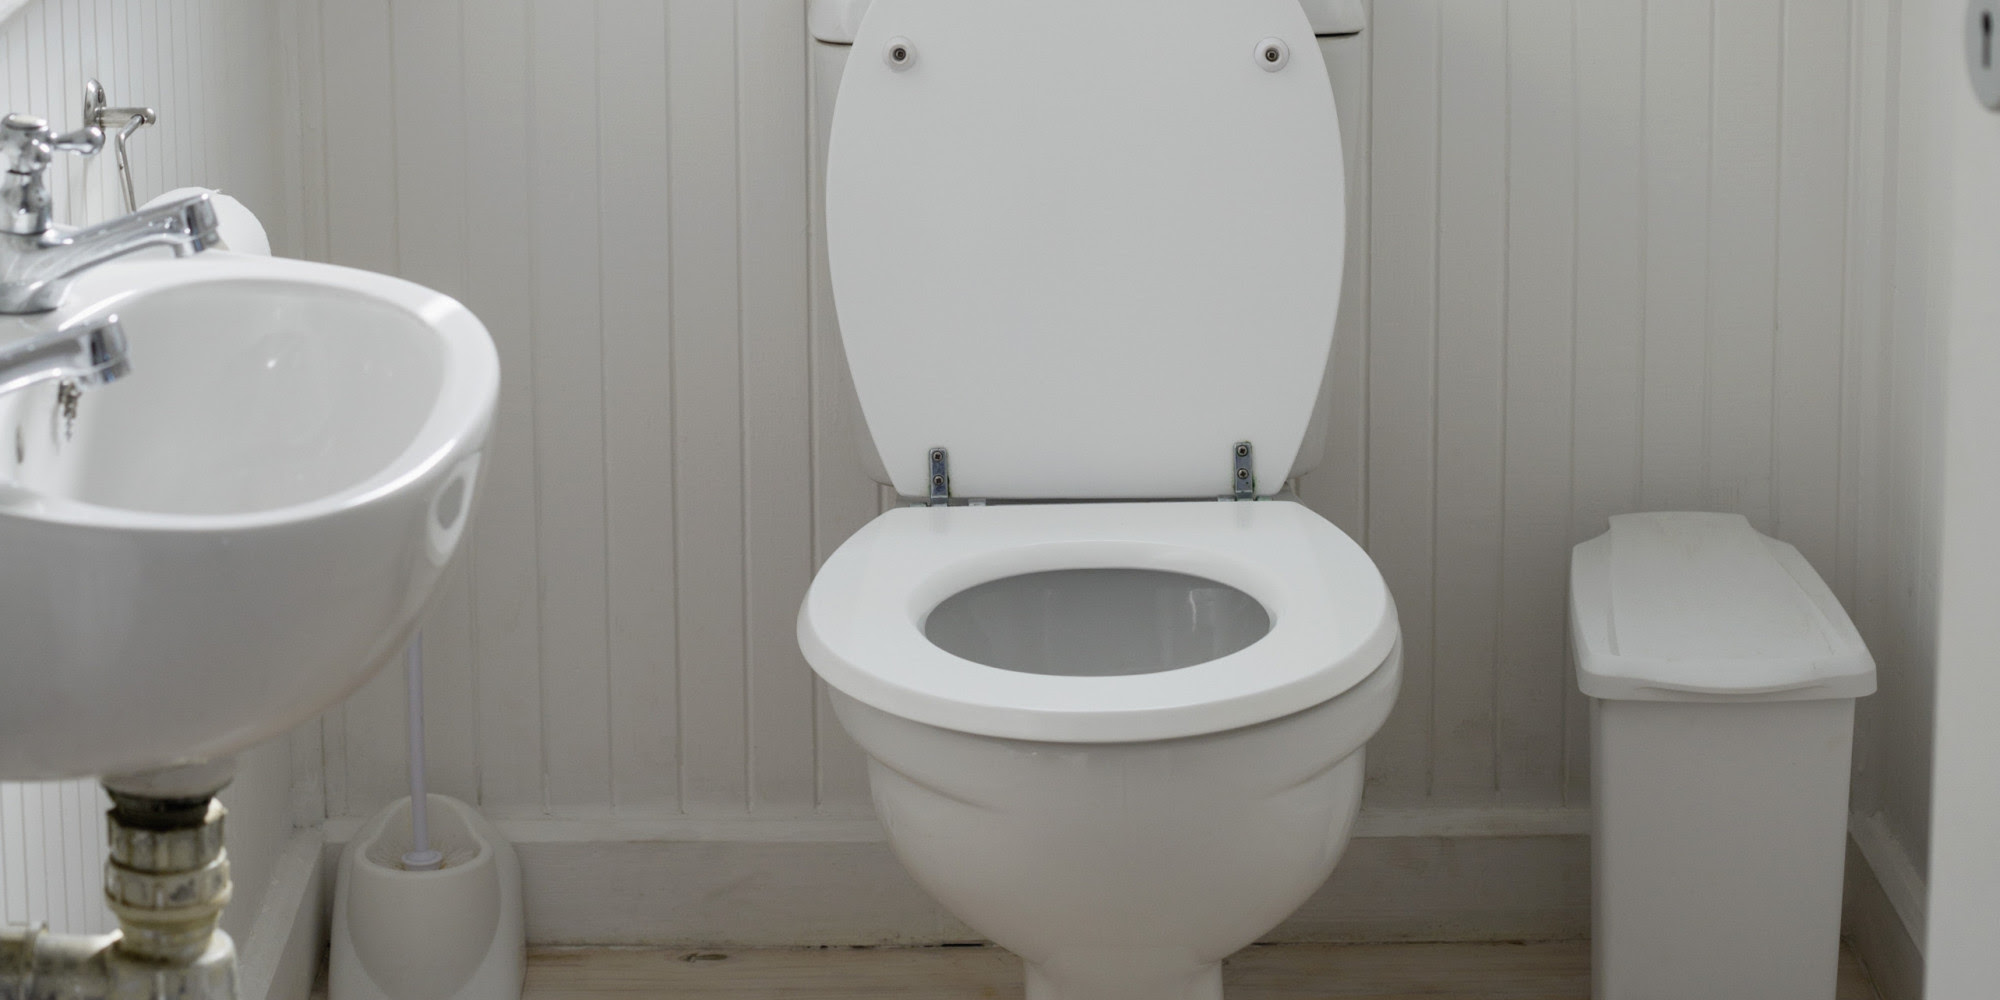 Toilet Usage Per Day Toto soirée eco 1 28 gpf elongated one piece